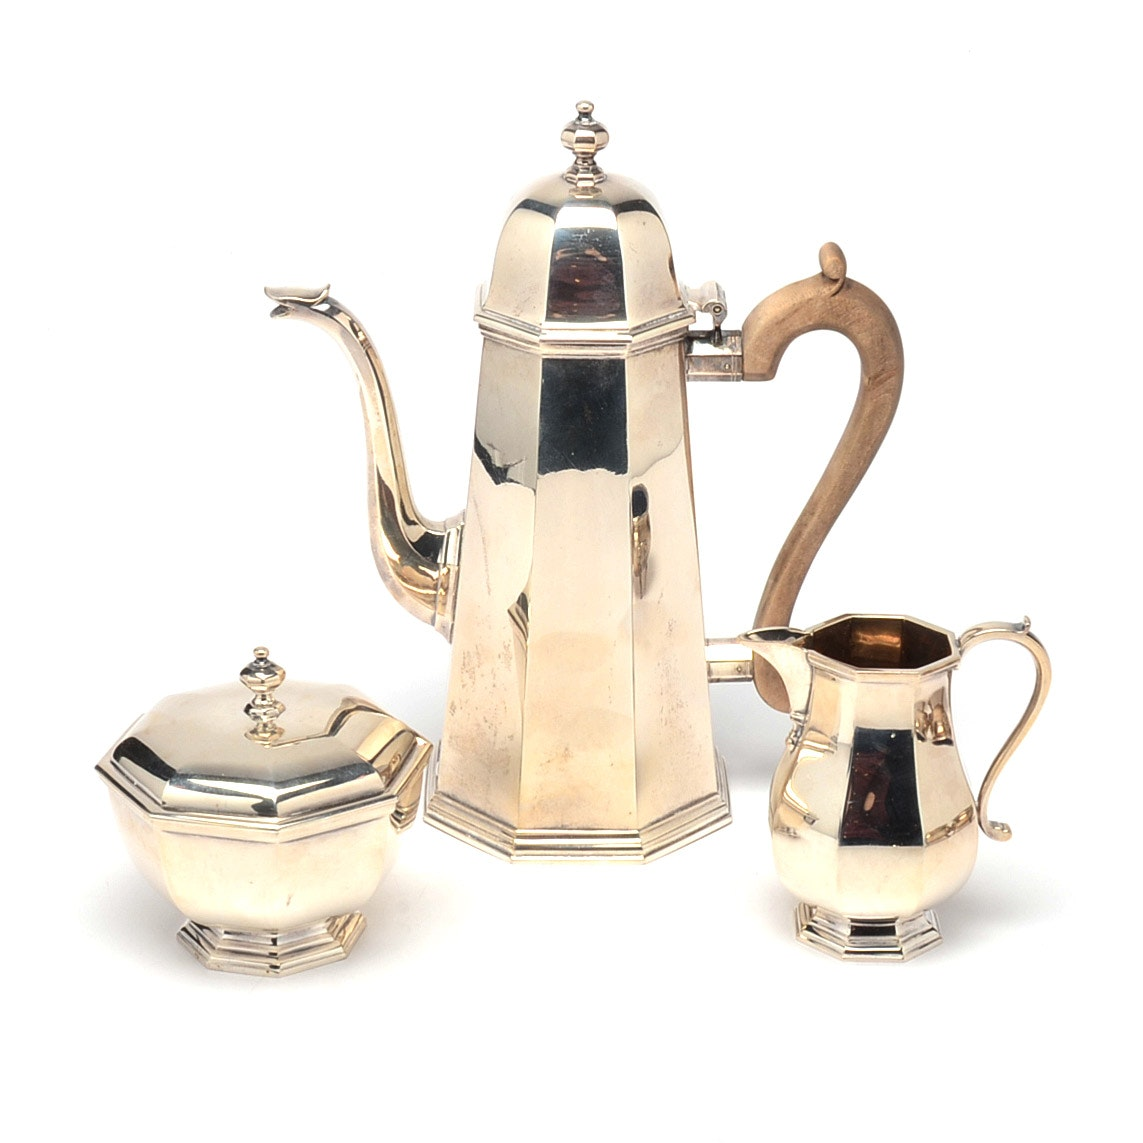 1977 William Walter Antiques Ltd. Sterling Silver Coffee Service